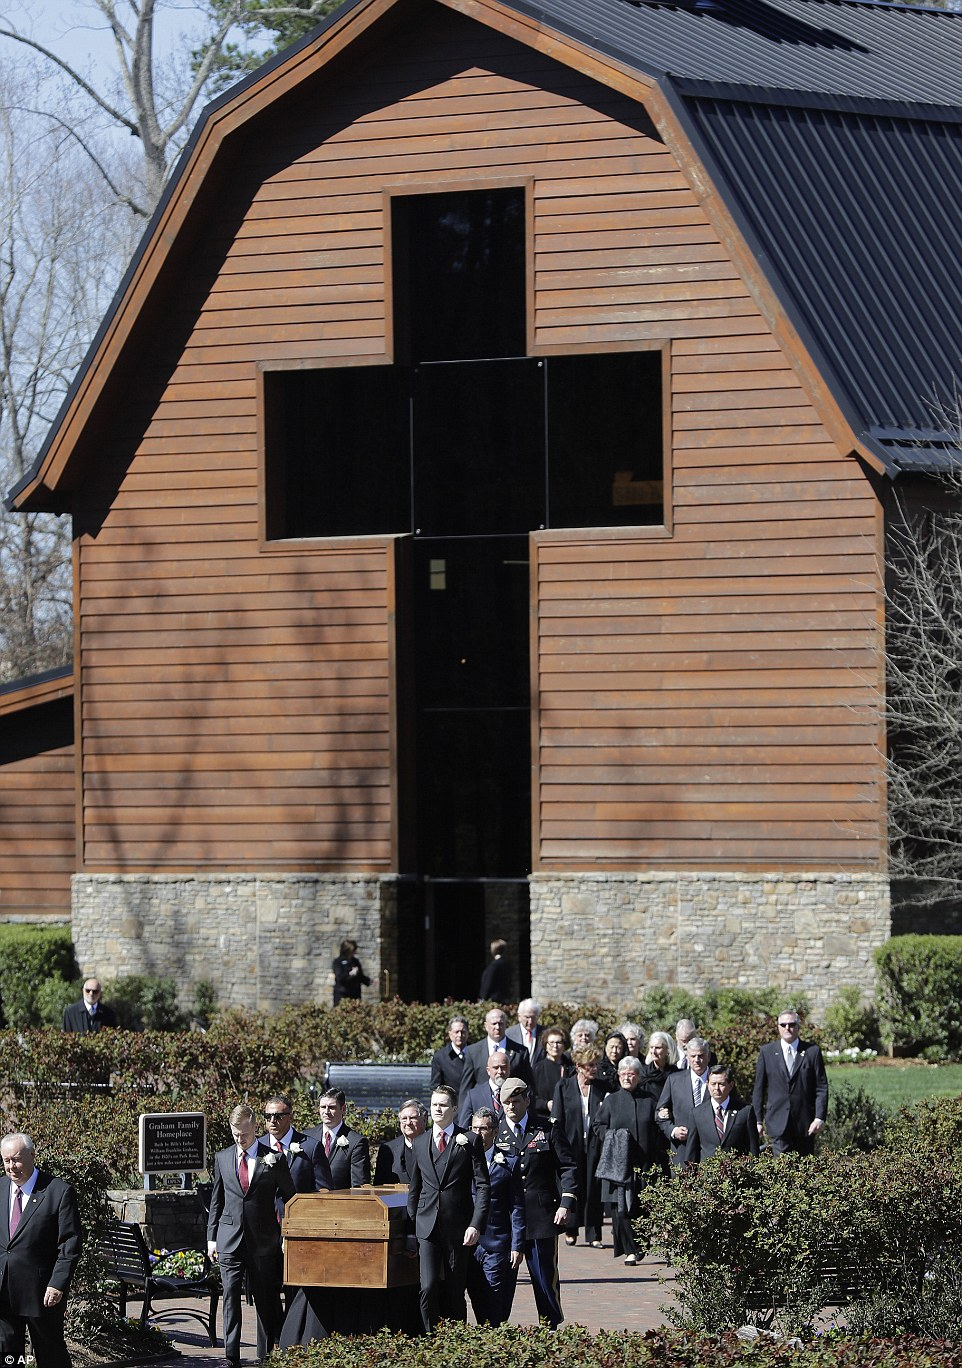 Heading to the tent:The casket of The Rev. Billy Graham is moved during a funeral service at the Billy Graham Library